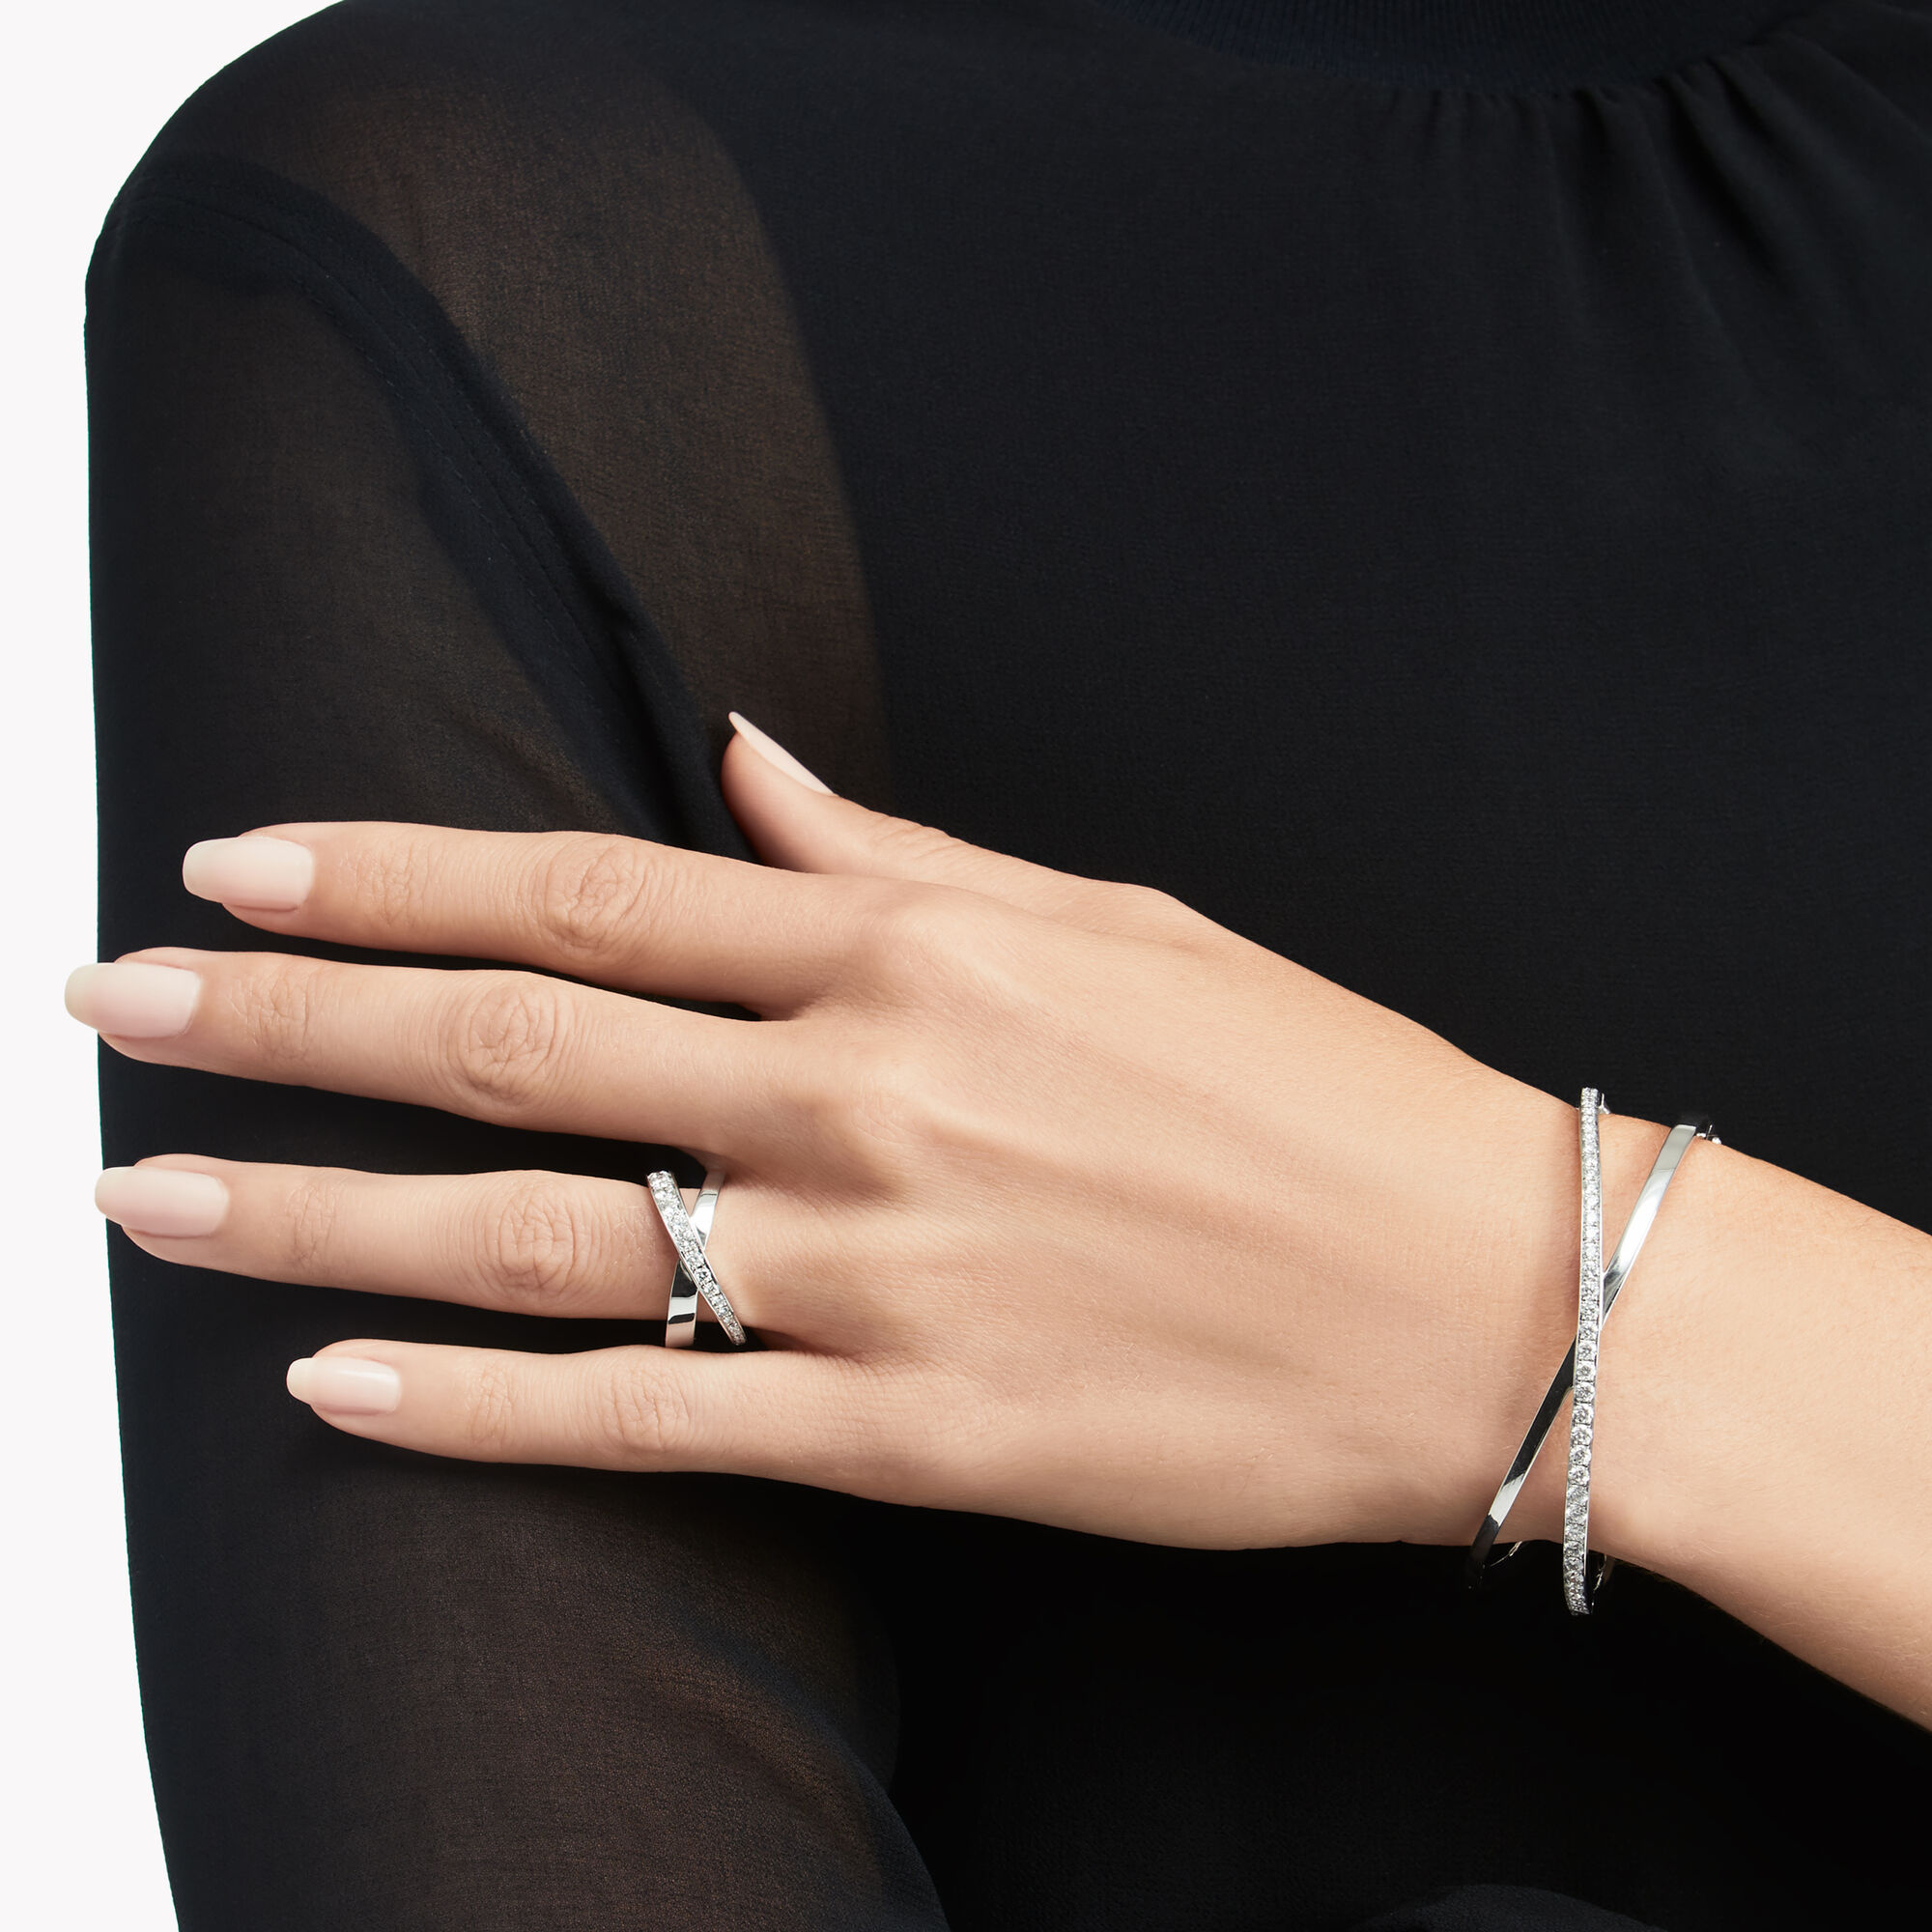 Model wears Kiss Diamond Bangle and Kiss Diamond Ring from the Graff jewellery collection